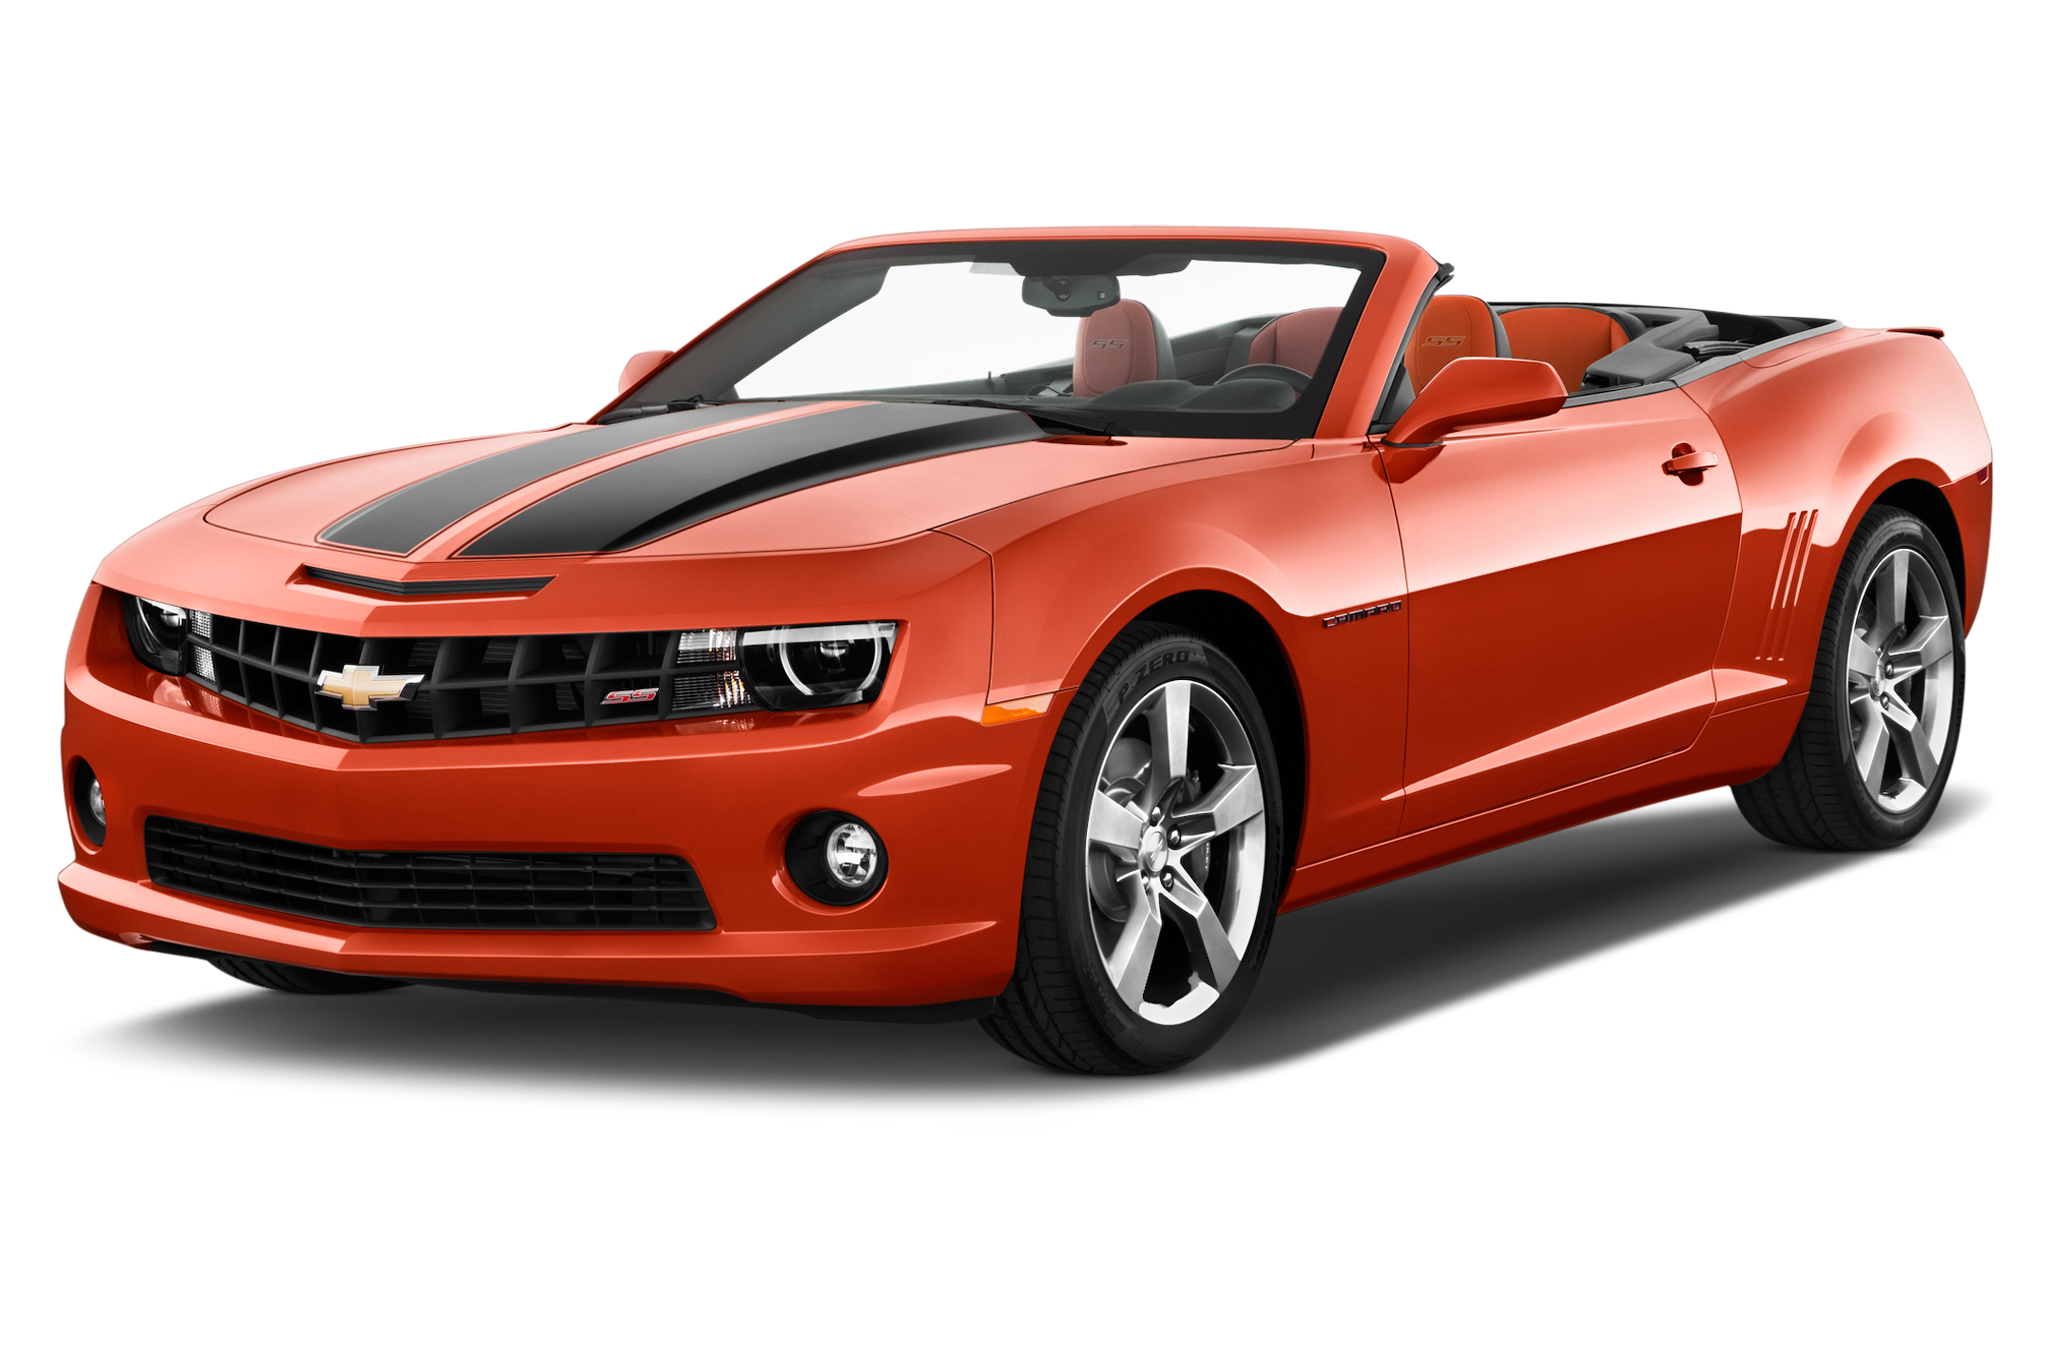 2011 Chevrolet Camaro Ss Convertible Driven Automobile